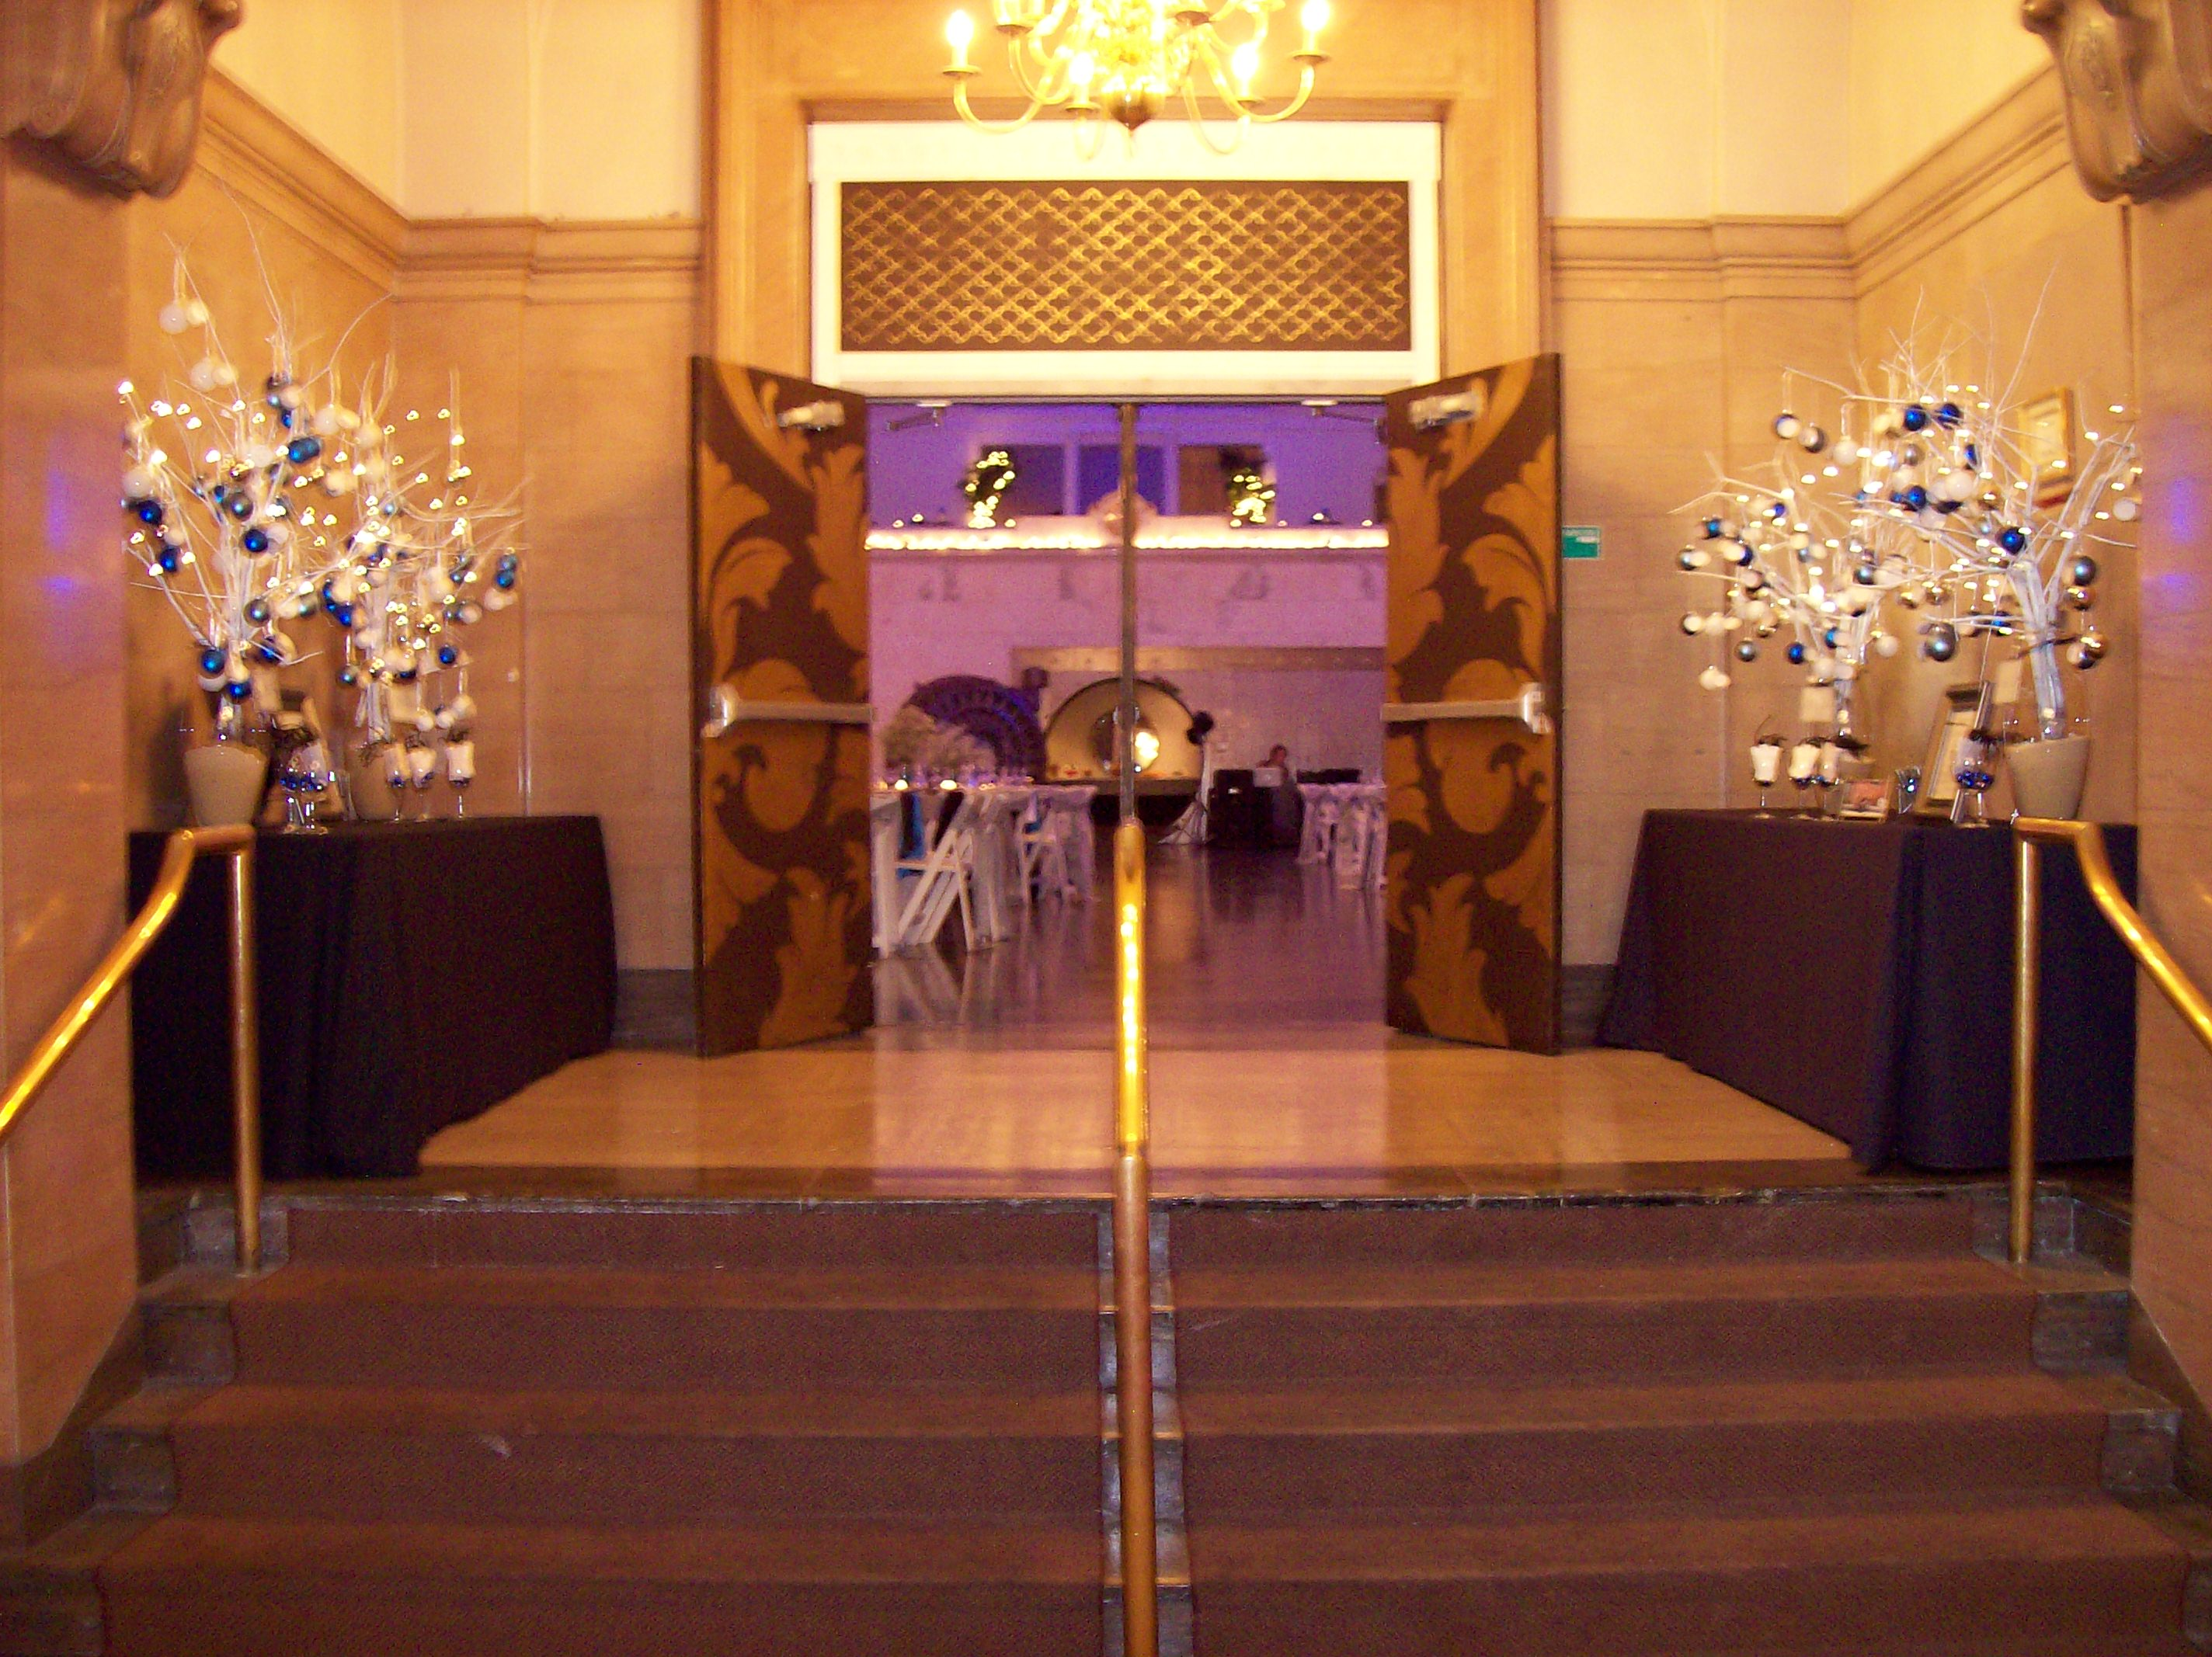 Tables in hall for guestbook, place cards, etc.